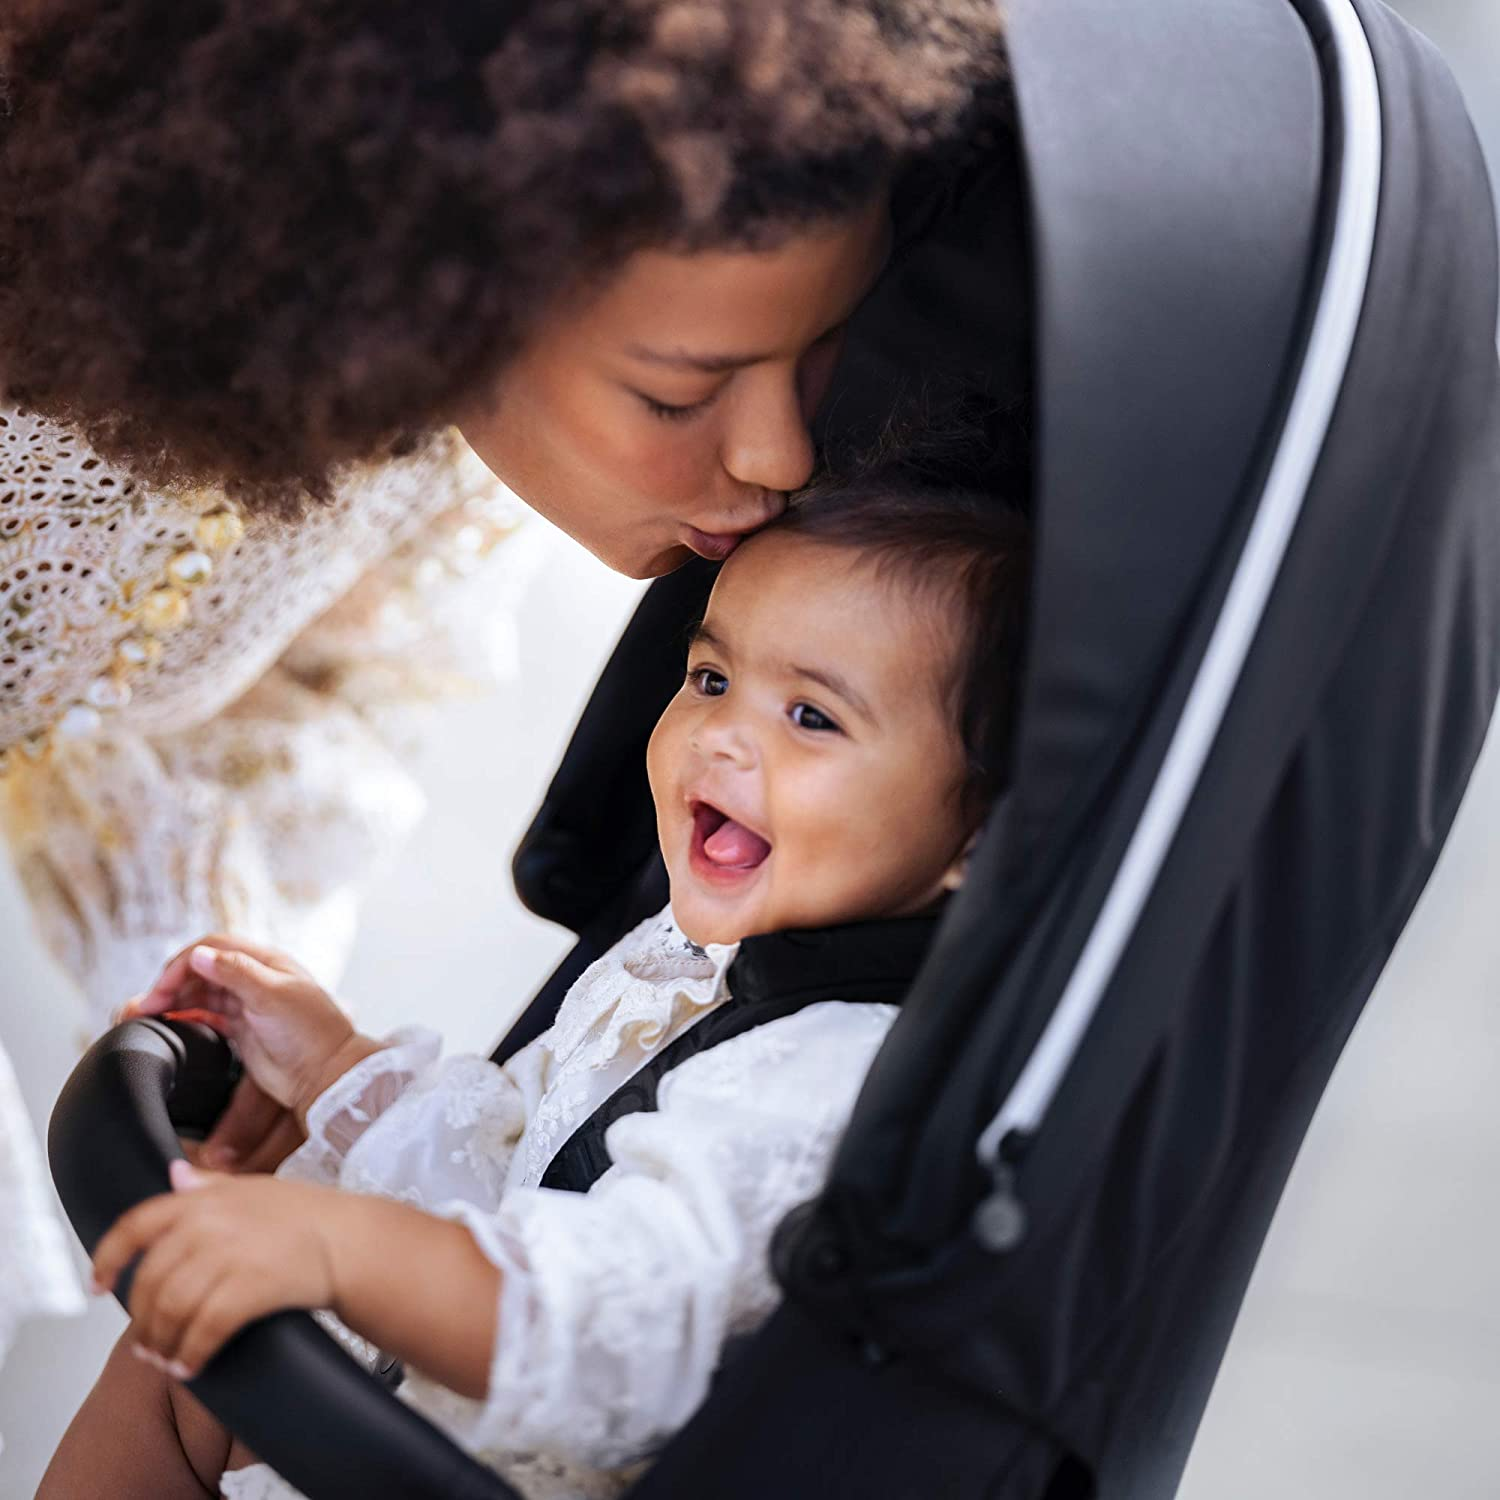 Stokke Xplory X, Ruby Red - Luxury Stroller - Adjustable for Both Baby & Parents' Comfort - Padding, Harness & Reflective Zipper for Added Safety - Folds in One Step